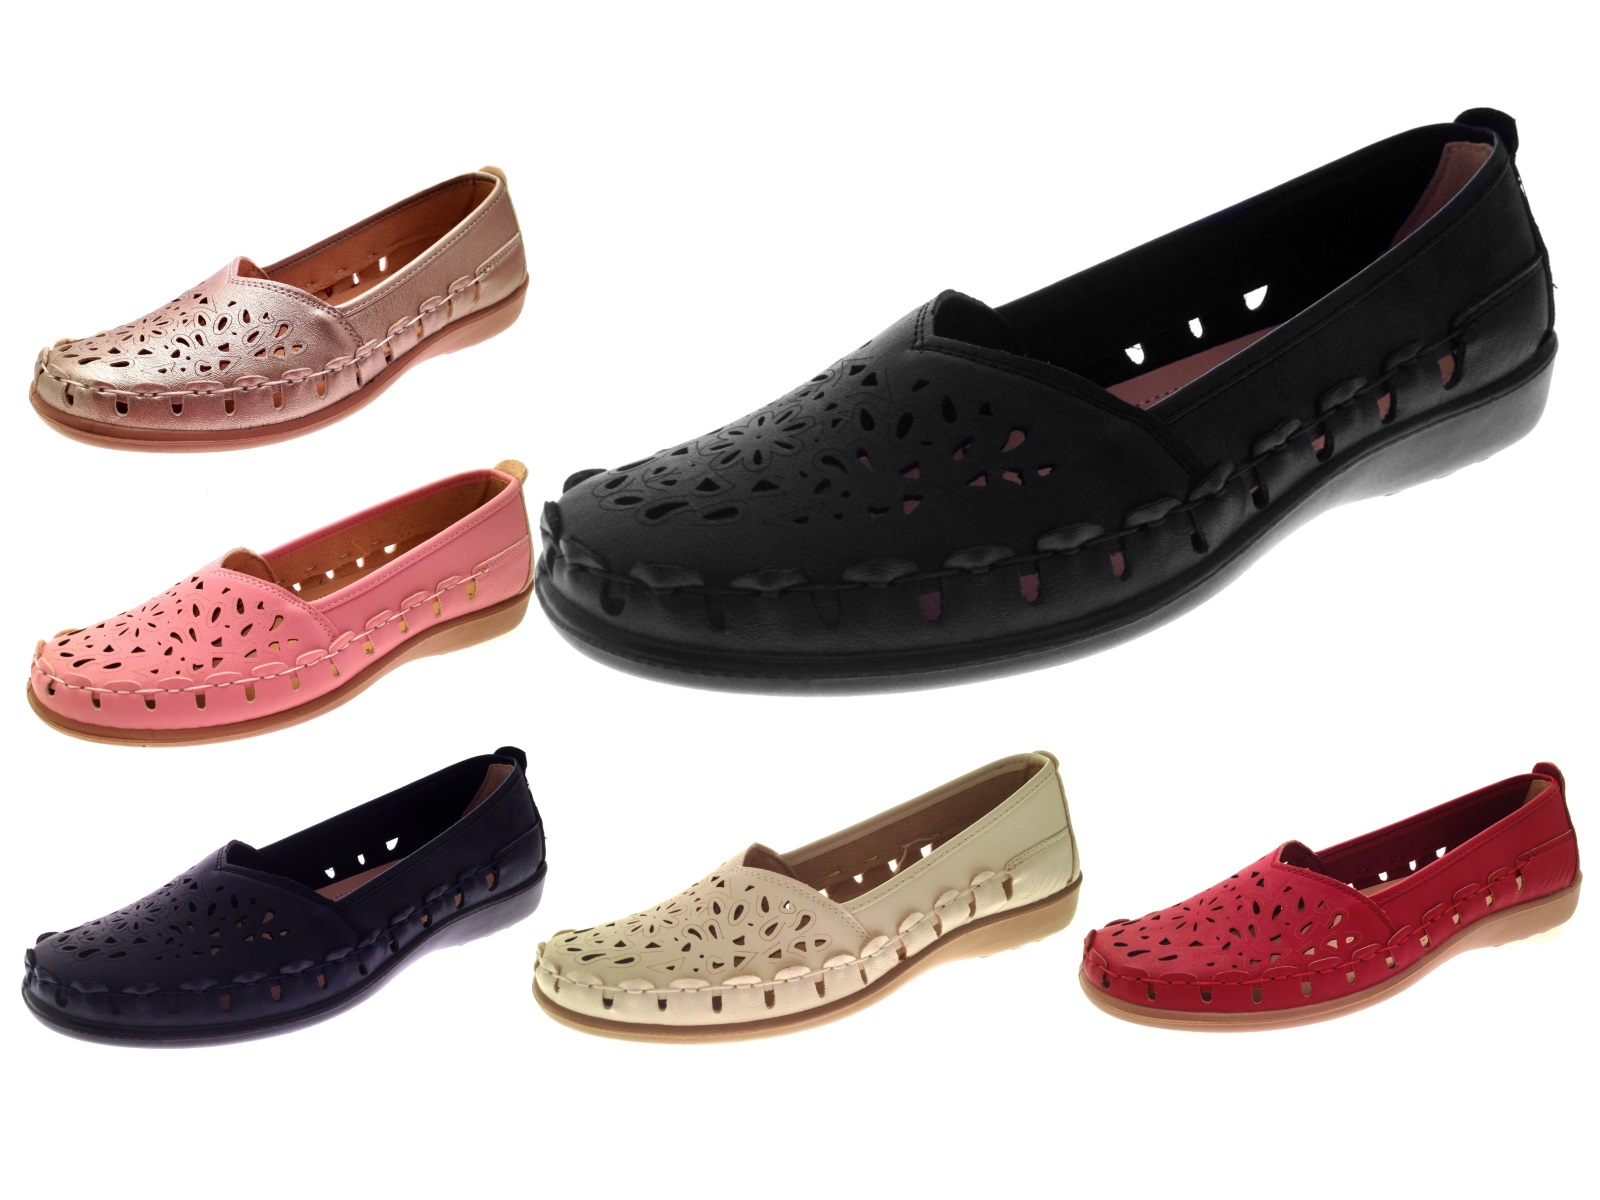 607d5b008ad Womens Faux Leather Comfort Loafers Cut Out Shoes Casual Summer Flats Size  3-8